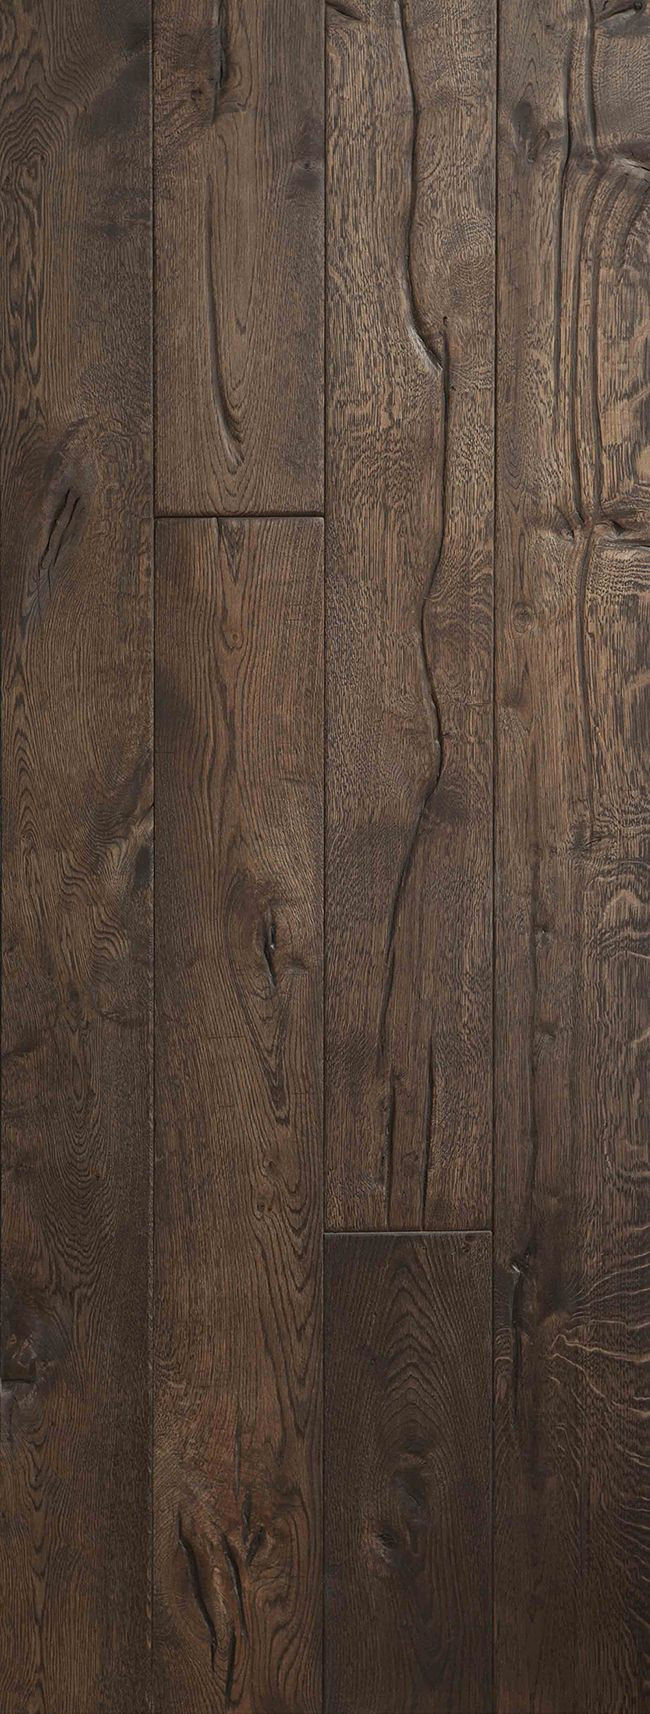 hardwood flooring langley of 254 best floors rugs etc images on pinterest cleaning hacks throughout african brown sauvage engineered rustic oak a· wooden floor